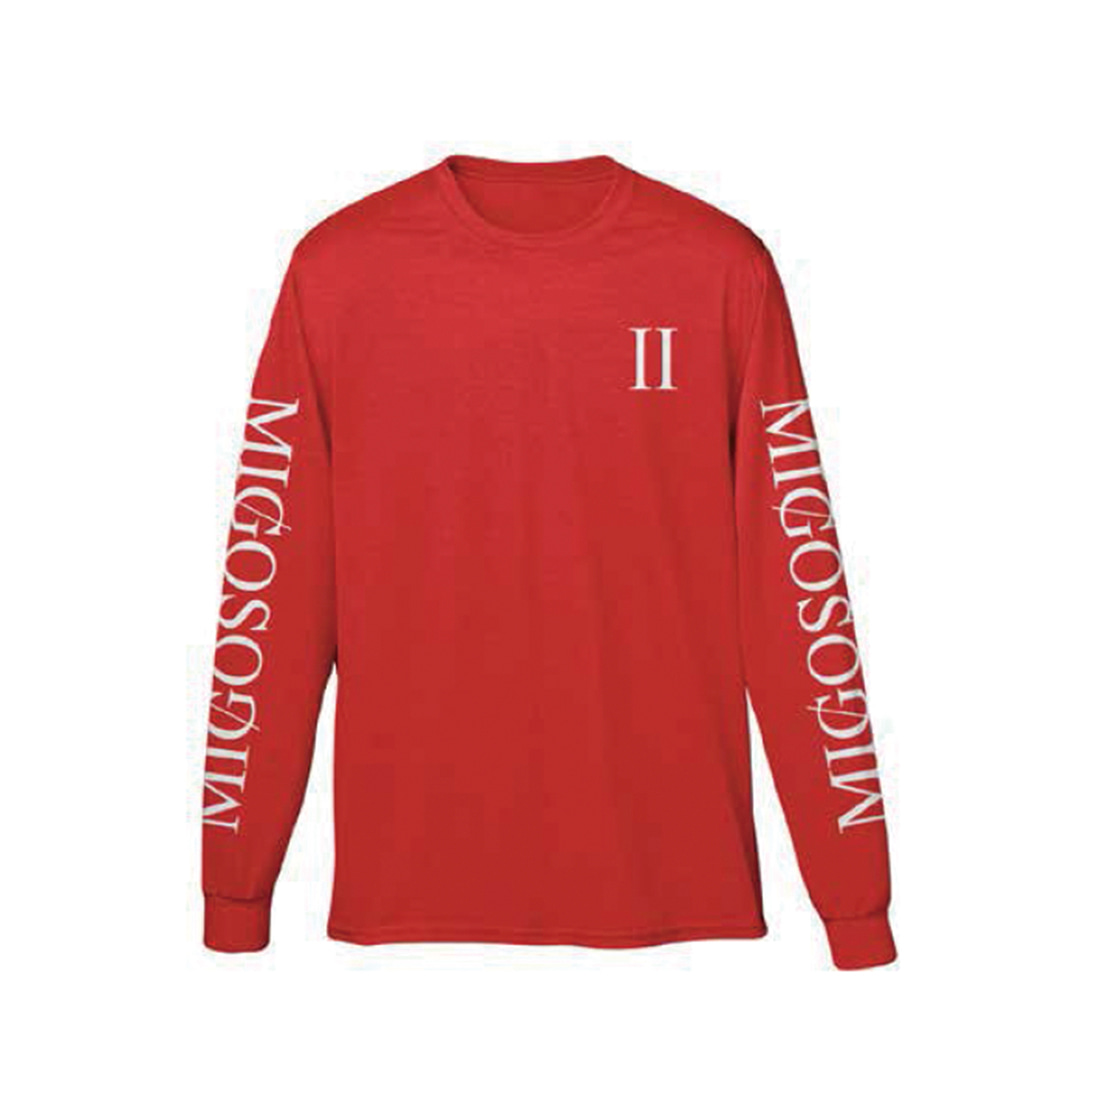 [Migos] CULTURE COLUMNS LONG SLEEVE RED